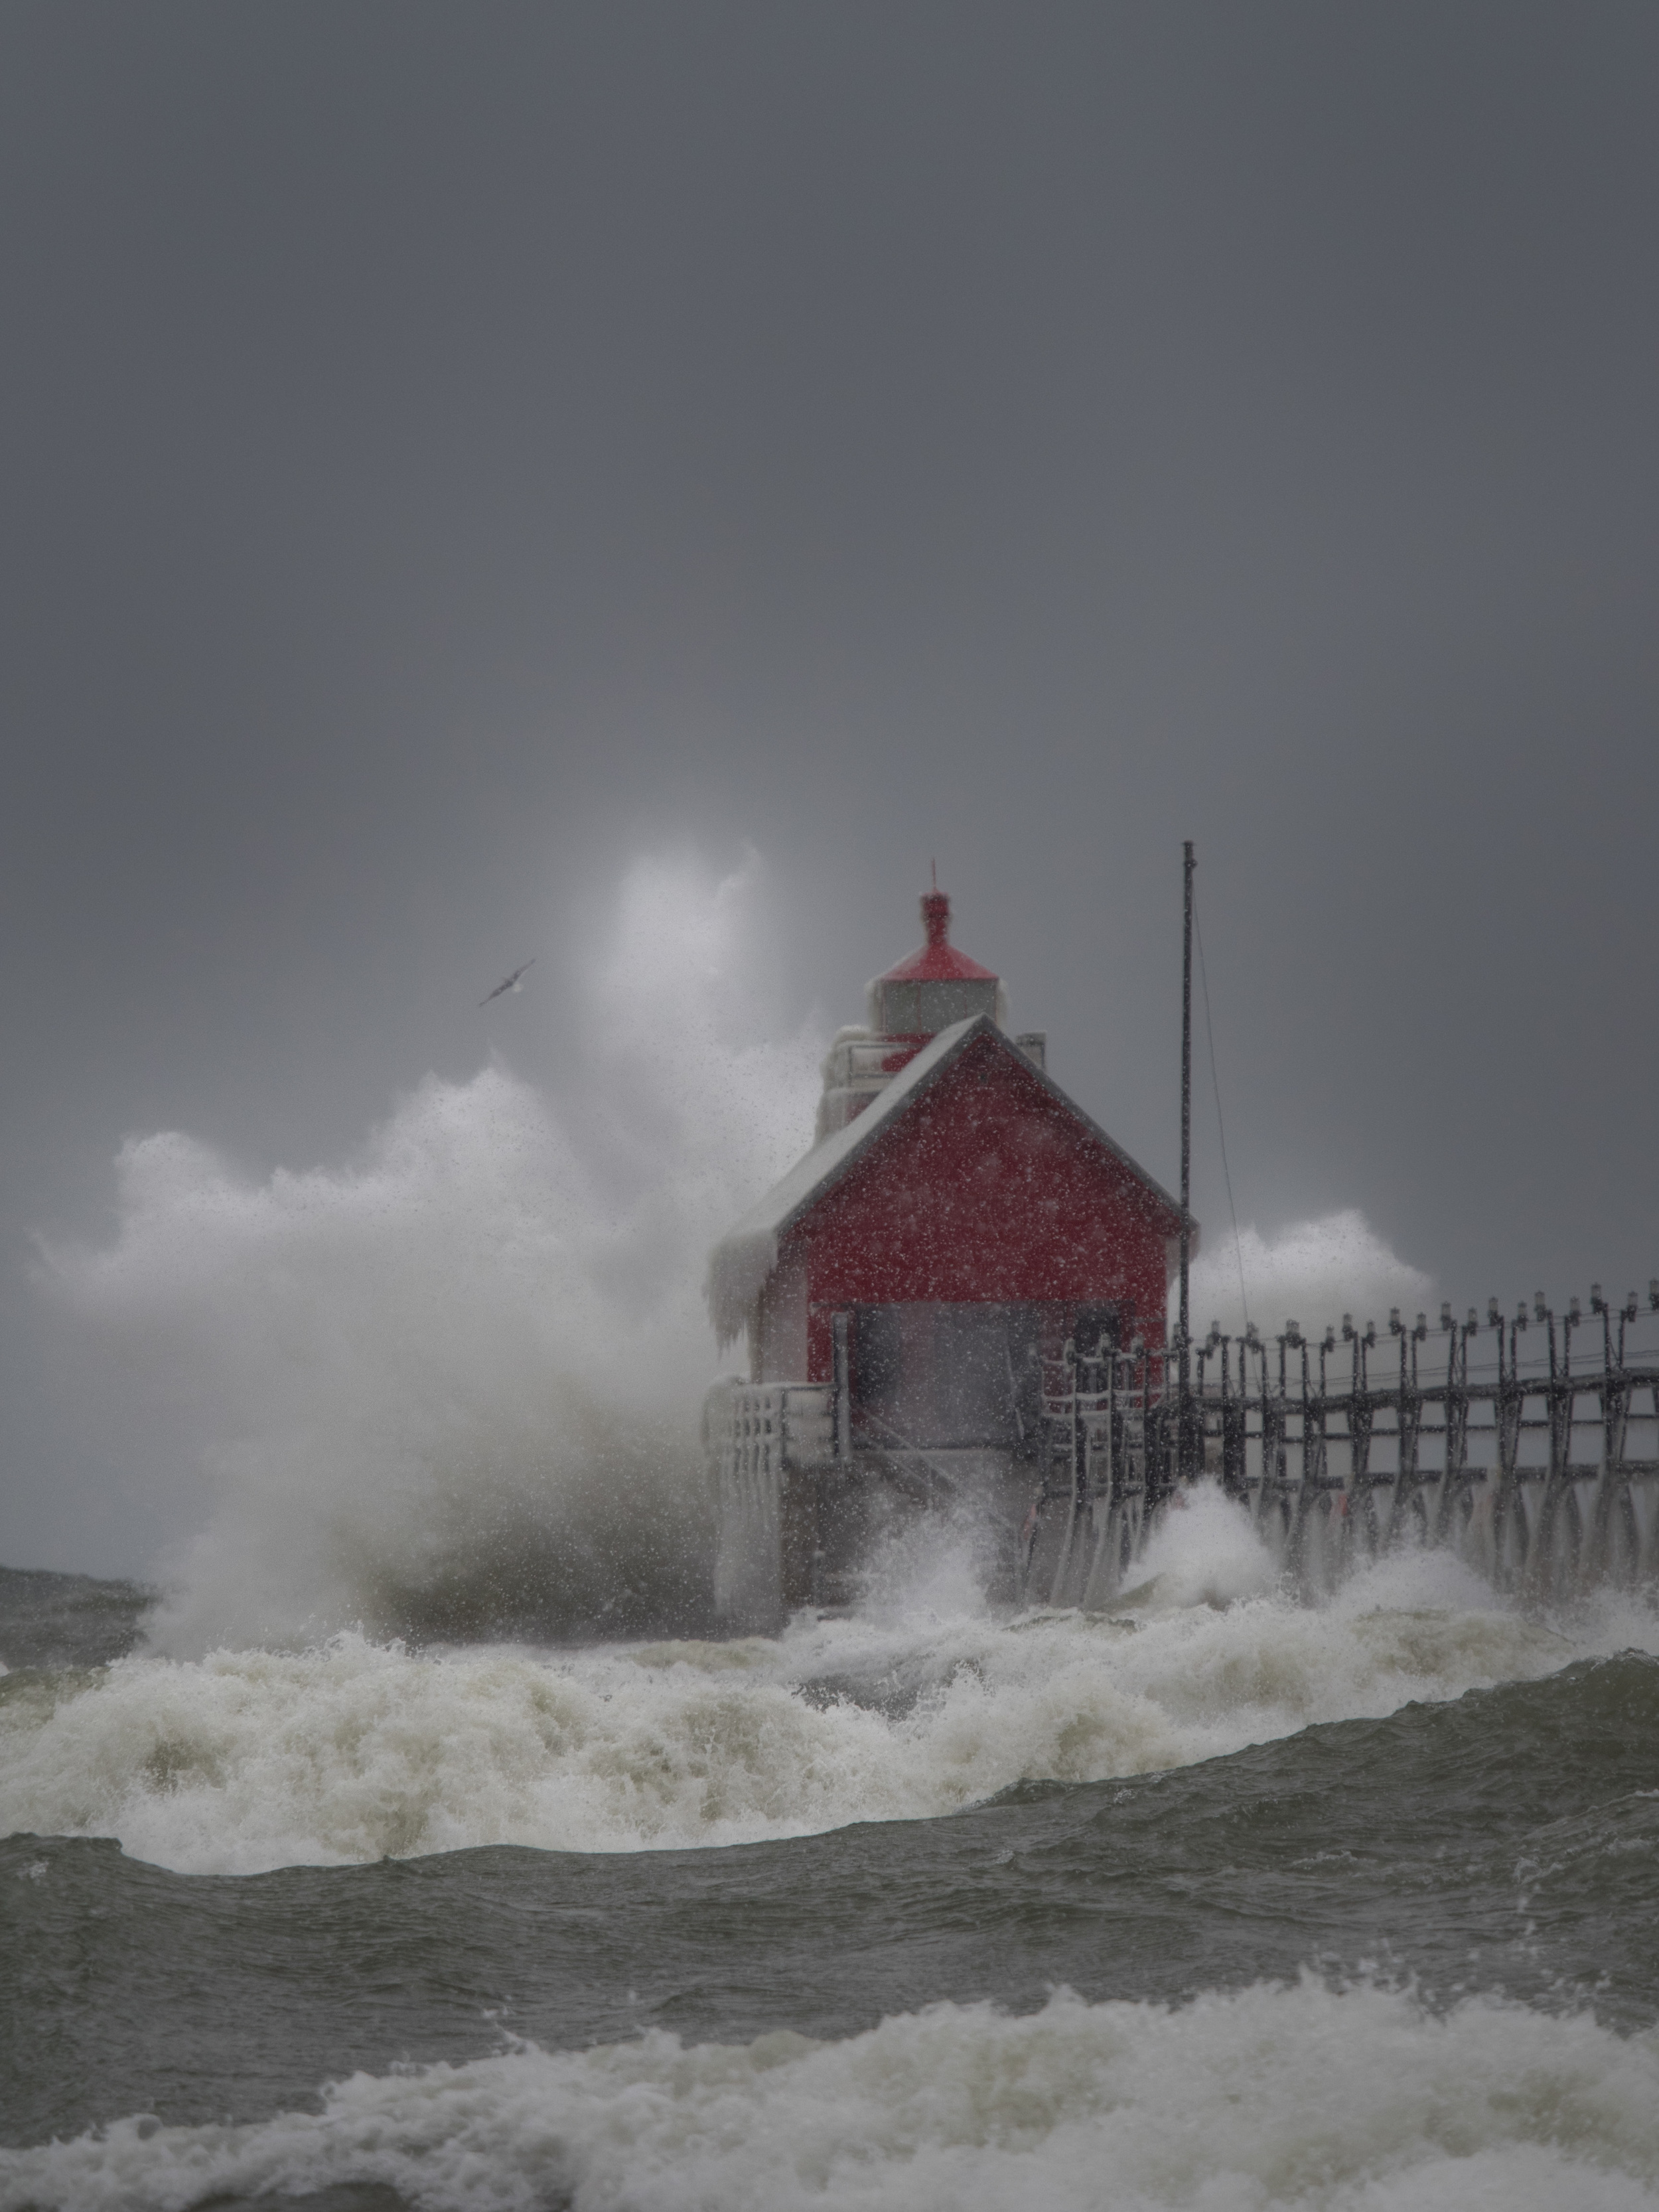 January 1st I headed to the Lake Michigan shoreline for some of the most incredible photos of the year. I went there with friend and fellow Olympus user  David Bostedor , and met up with another Olympus shooter  Bob Panick  (who drove HOURS to get there).